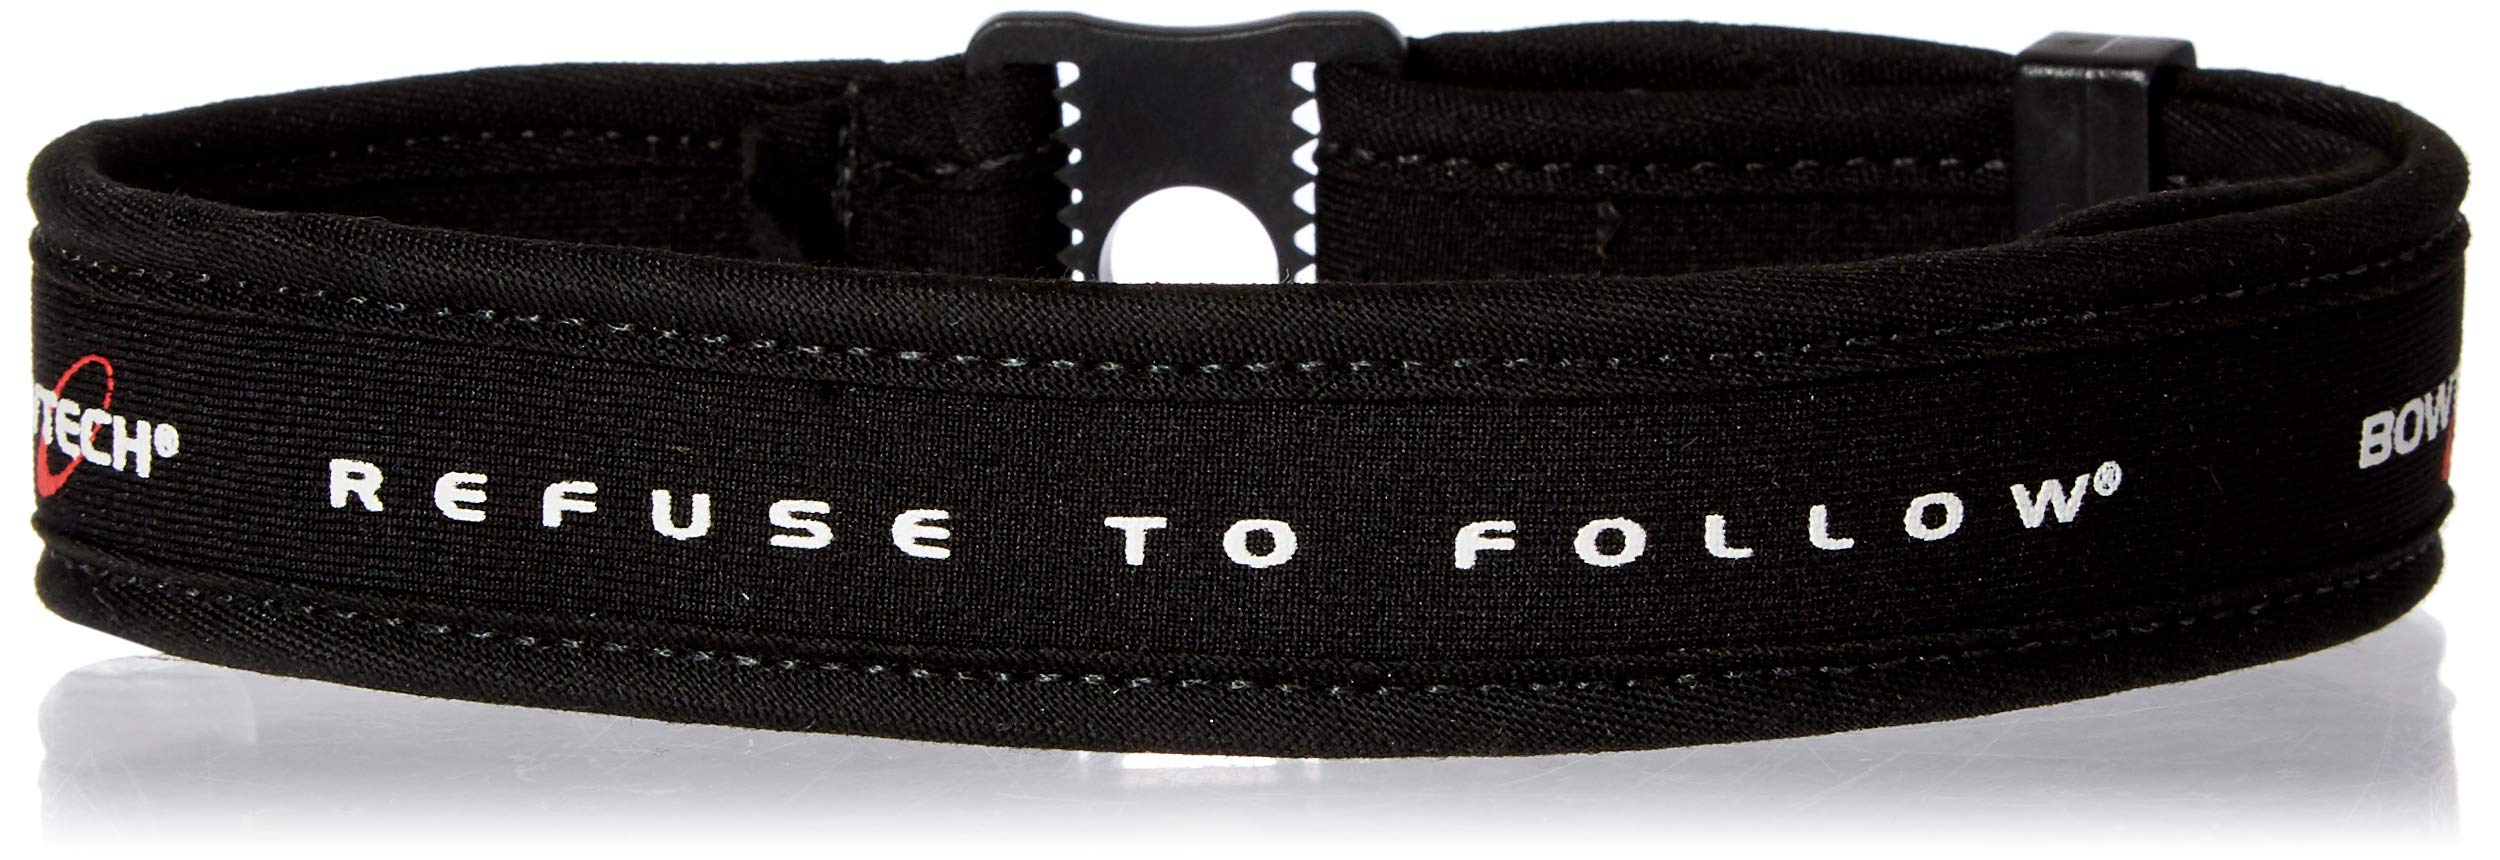 EBBQ OPS Wrist Sling - Bowtech Refuse to Follow by EBBQ